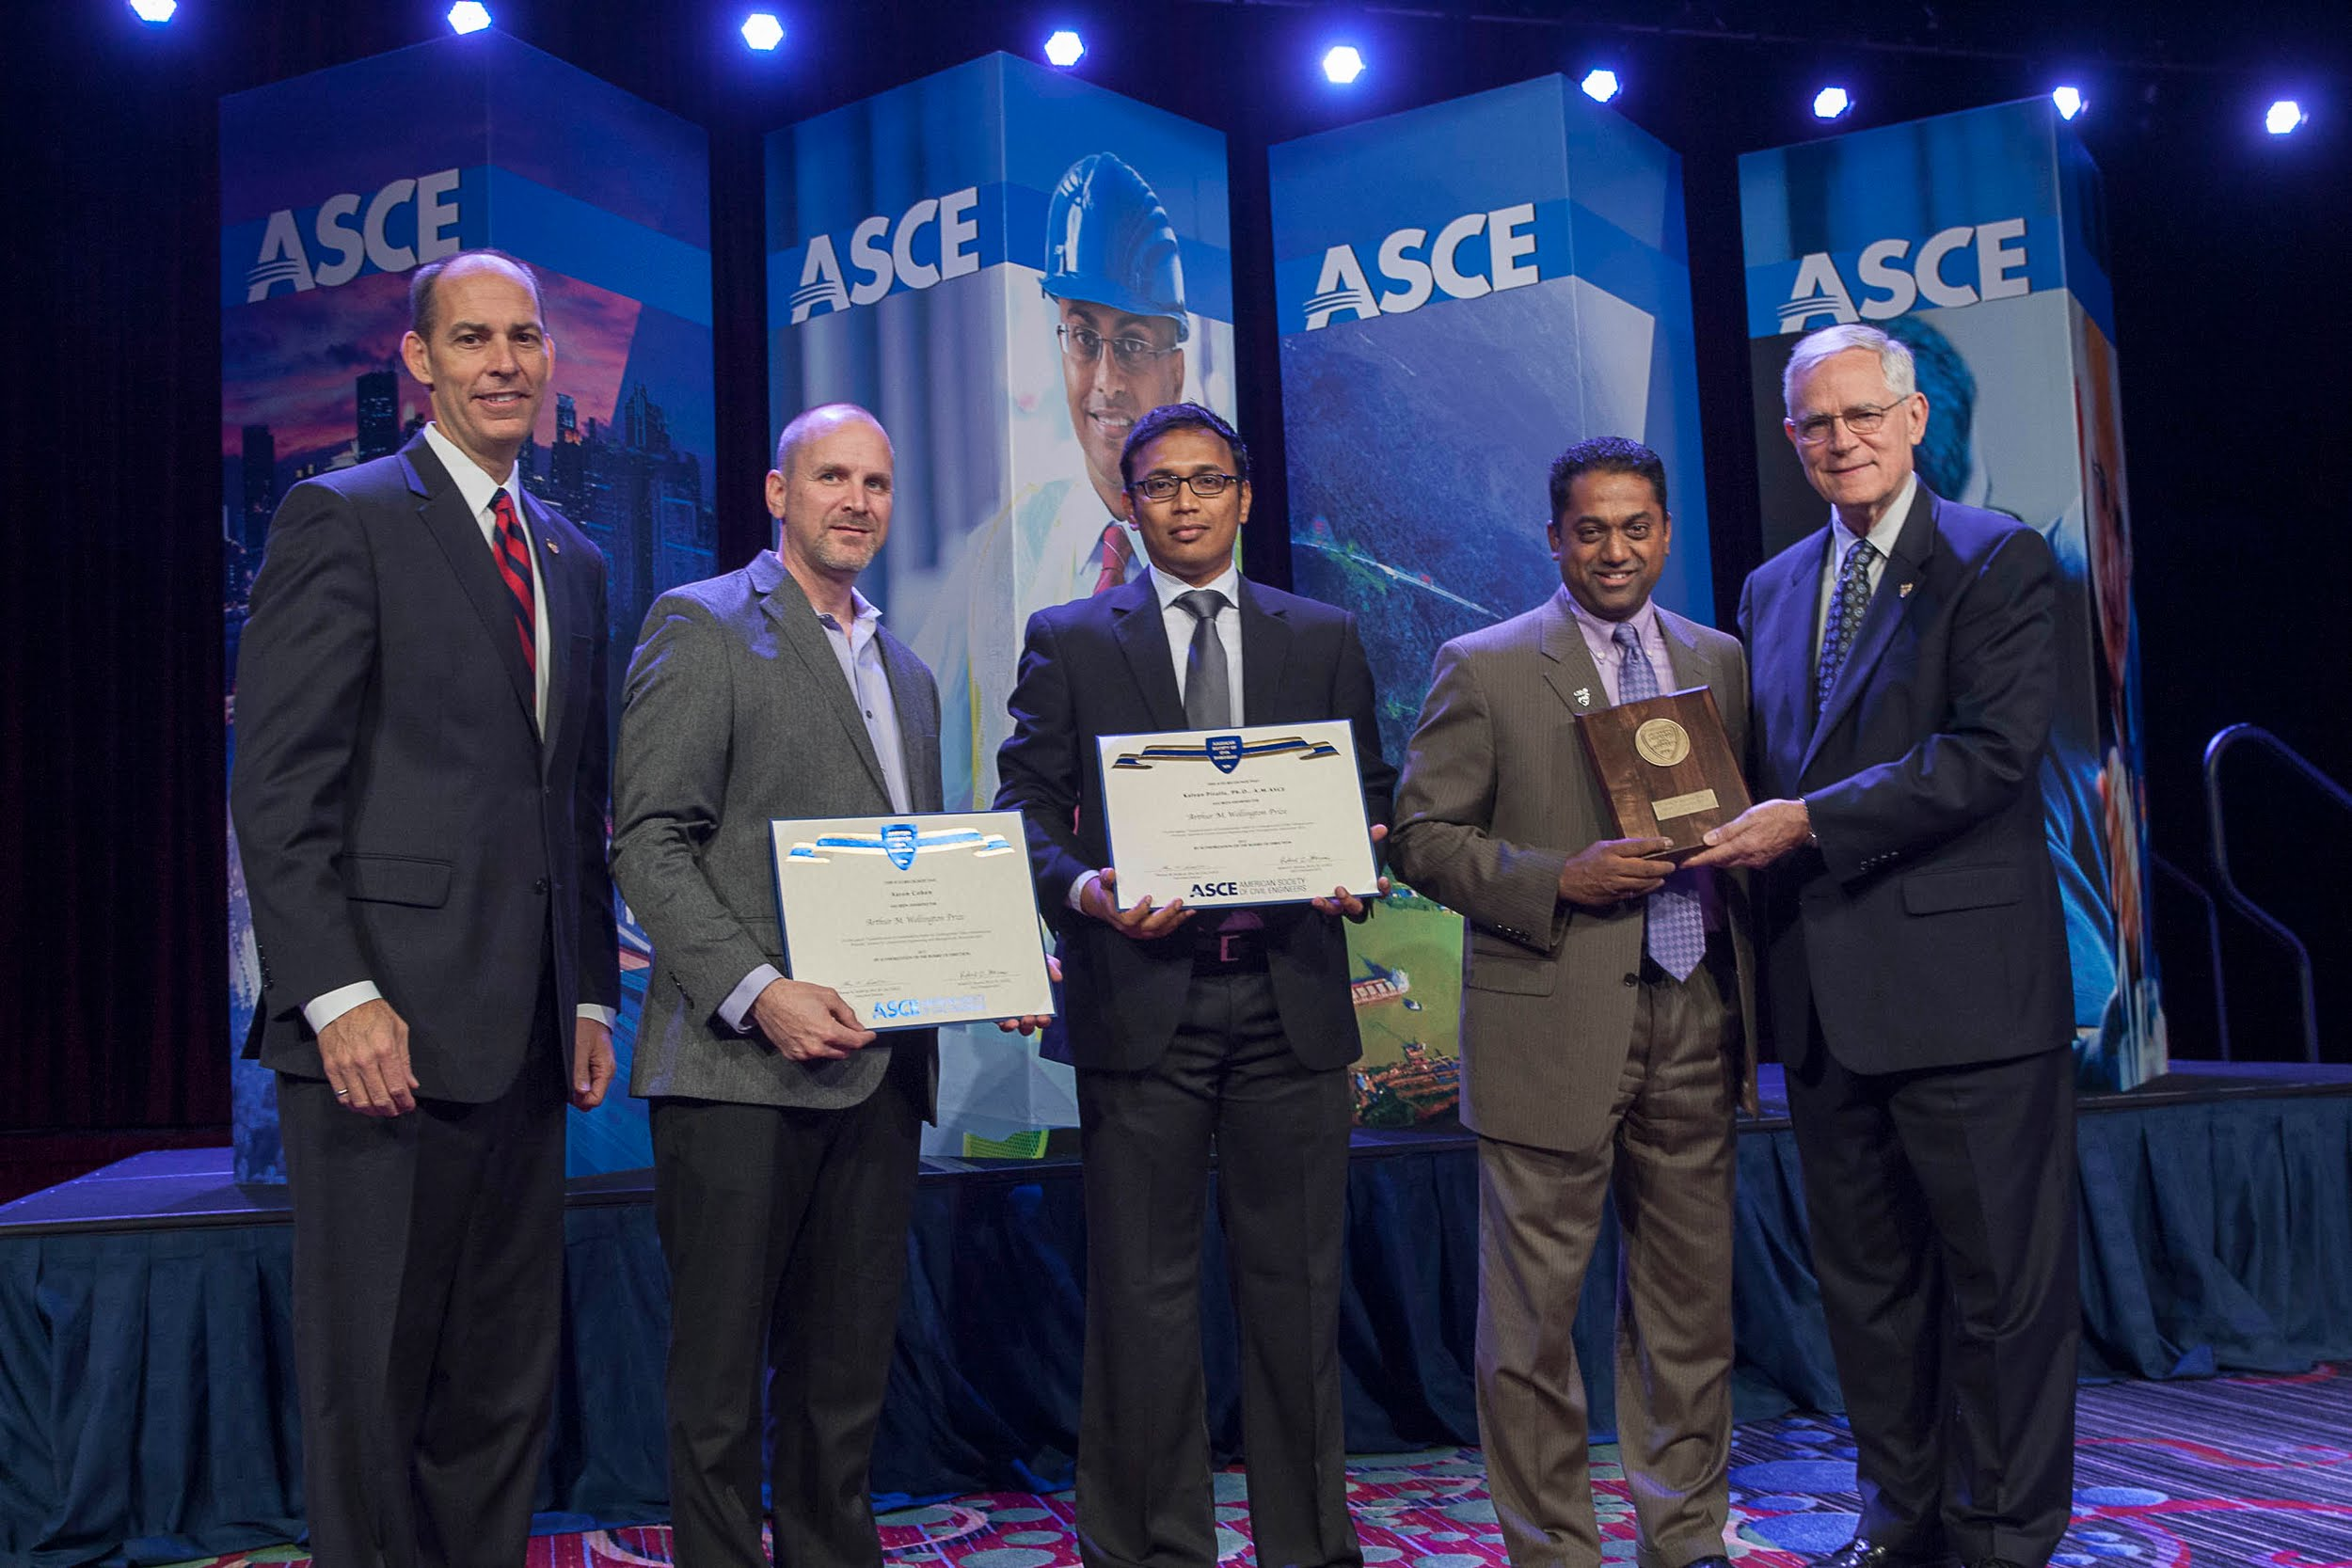 Left to Right: Mr. Thomas W. Smith III (ASCE's Executive Director), Mr. Aaron Cohen (Senior Lecturer at ASU), Dr. Kalyan R. Piratla (Asst. Prof. at Clemson), Dr. Samuel T. Ariaratnam (Prof. at ASU), and Dr. Robert D. Stevens (ASCE President)